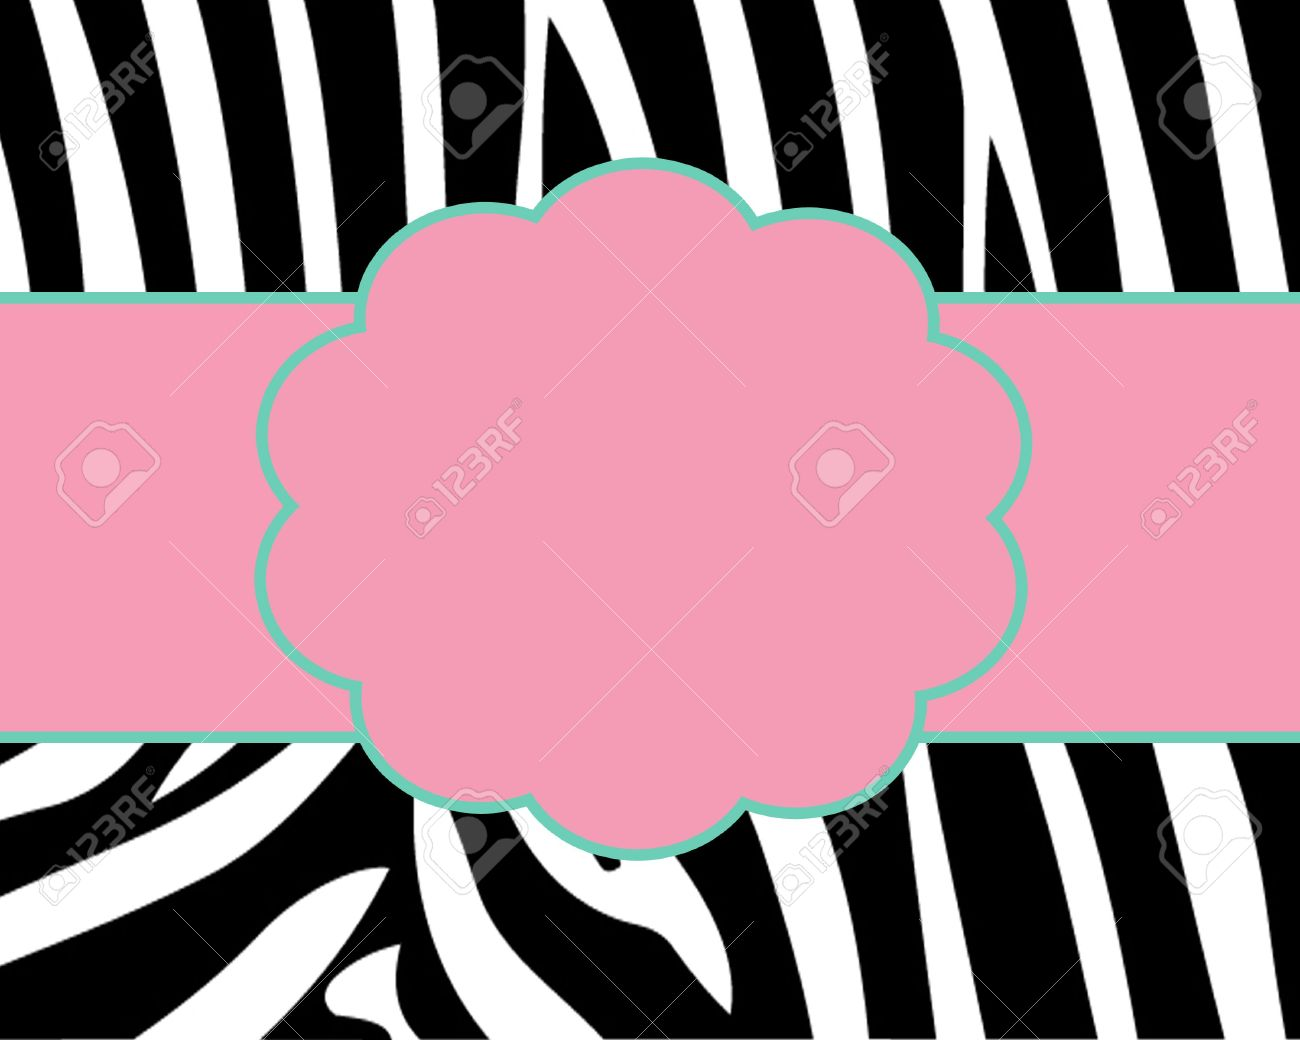 Zebra Print Card Template Stock Photo, Picture And Royalty Free ...